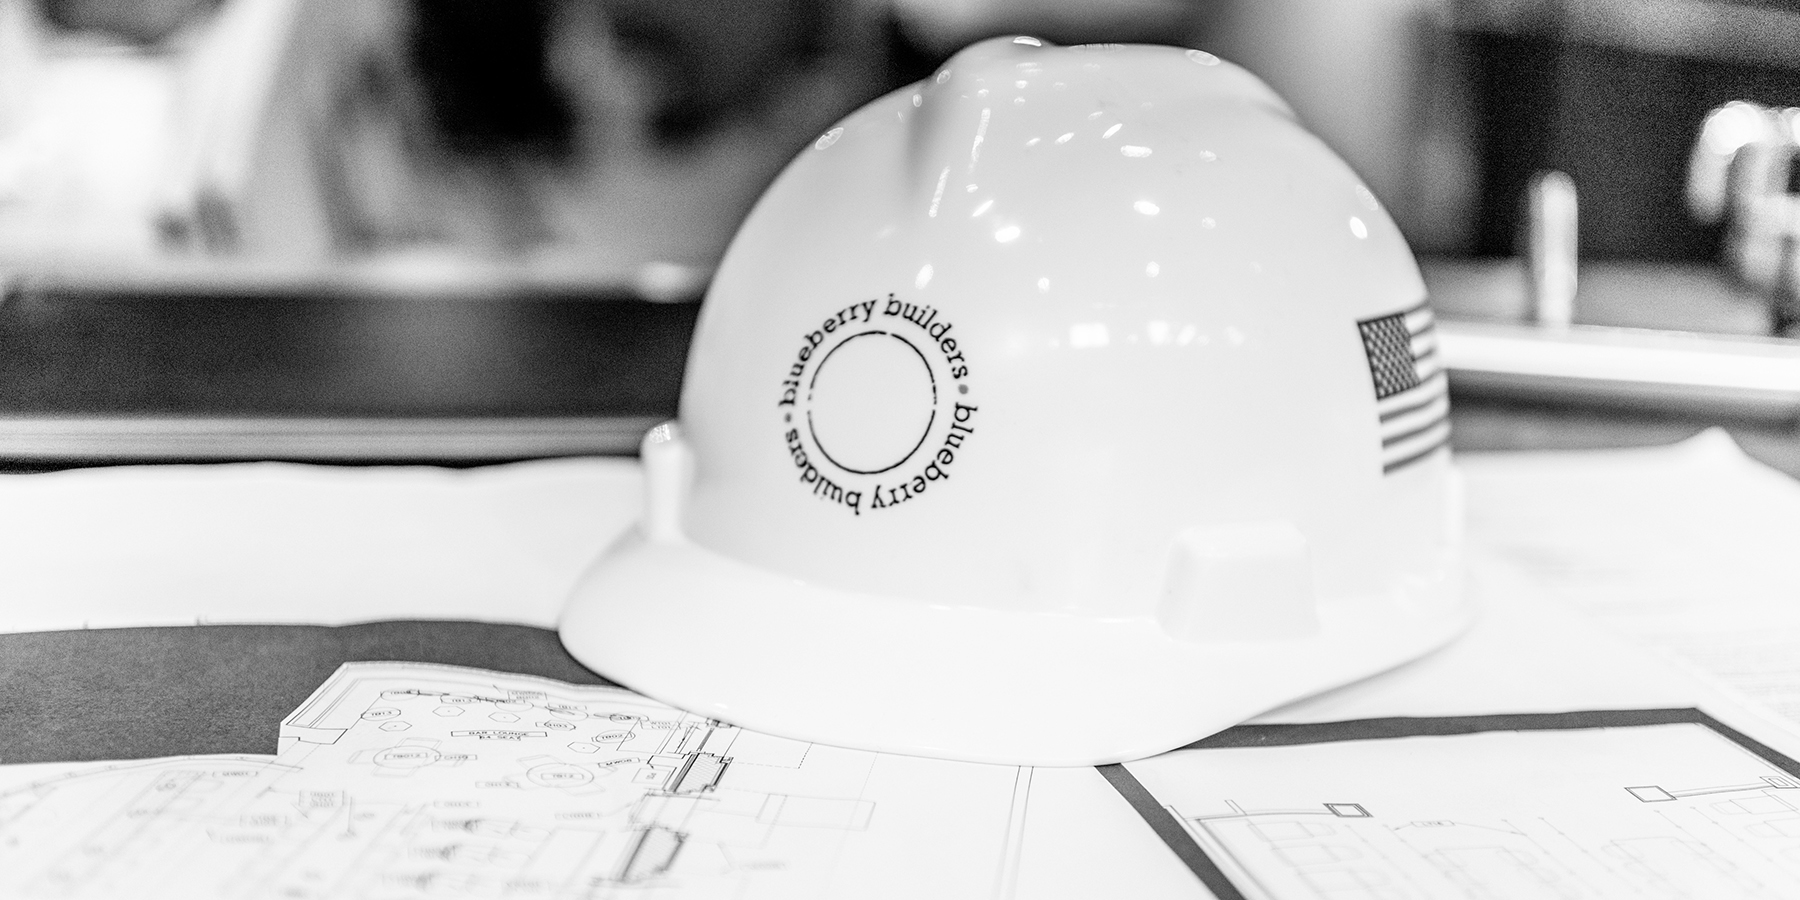 Blueberry Team About Us. The team at Blueberry Builders is redesigning construction management, general contracting and design build services in NYC.